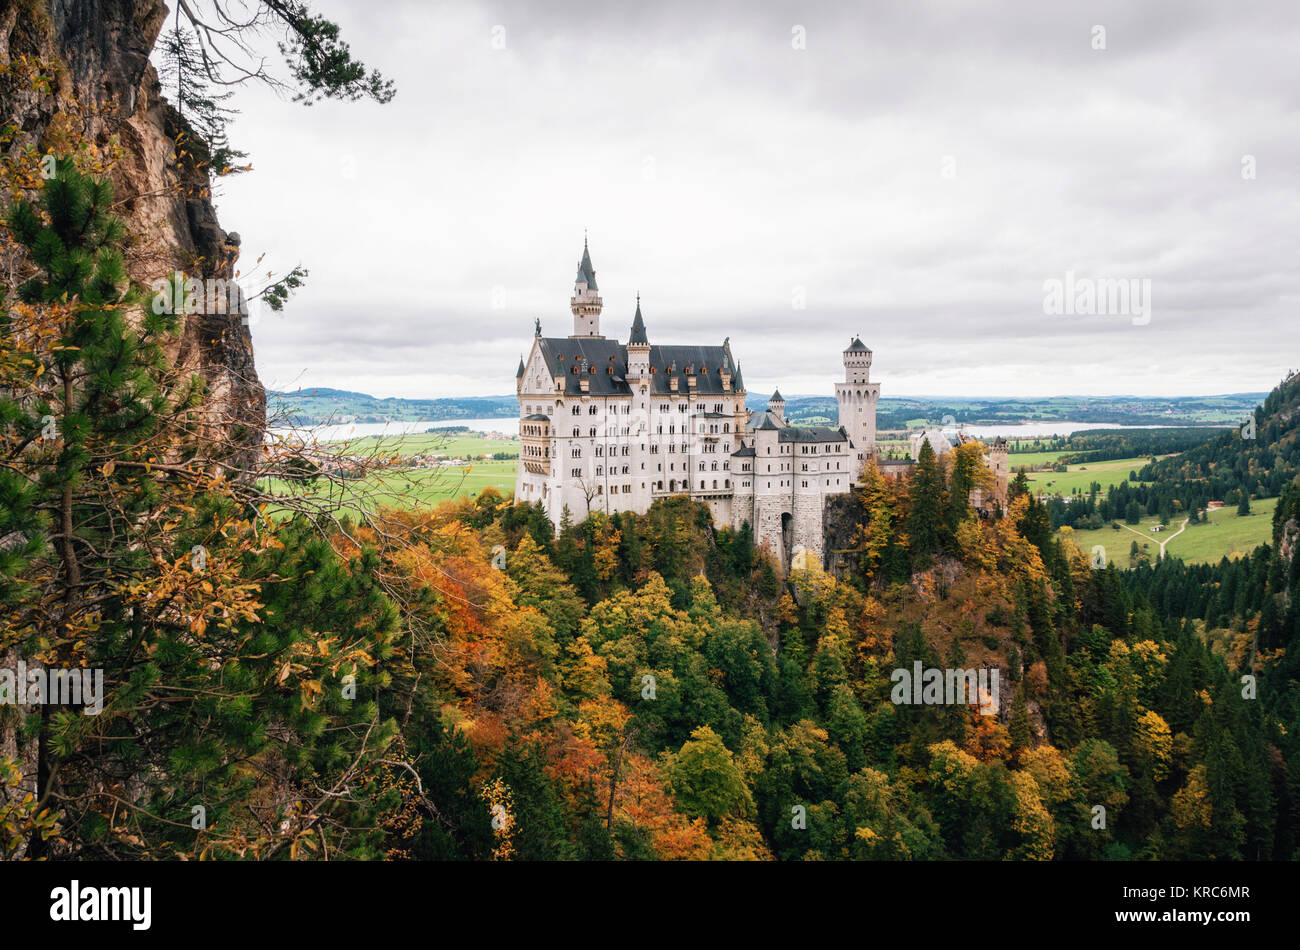 Neuschwanstein castle in colorful autumn day in Bavaria, Germany - Stock Image